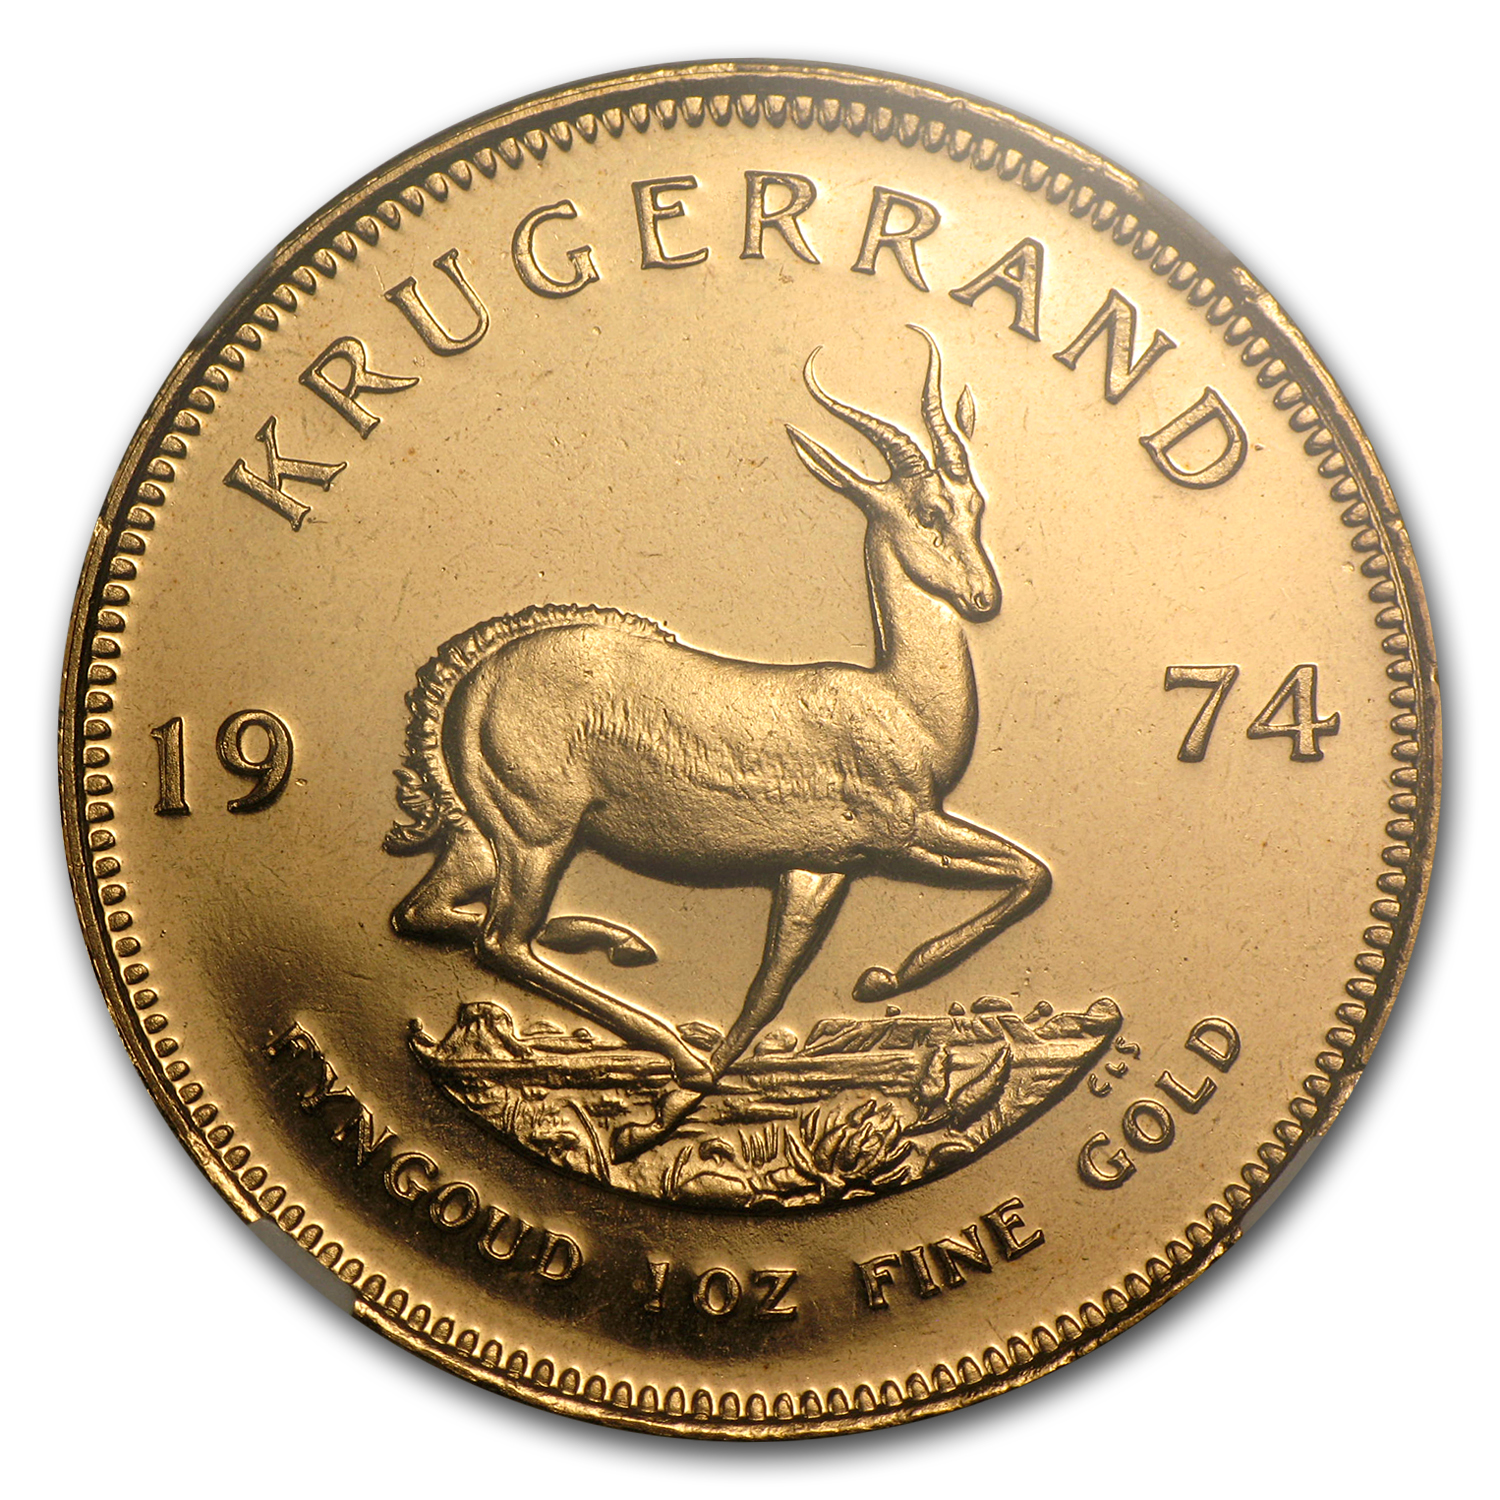 1974 South Africa 1 oz Gold Krugerrand PF-68 Cameo NGC